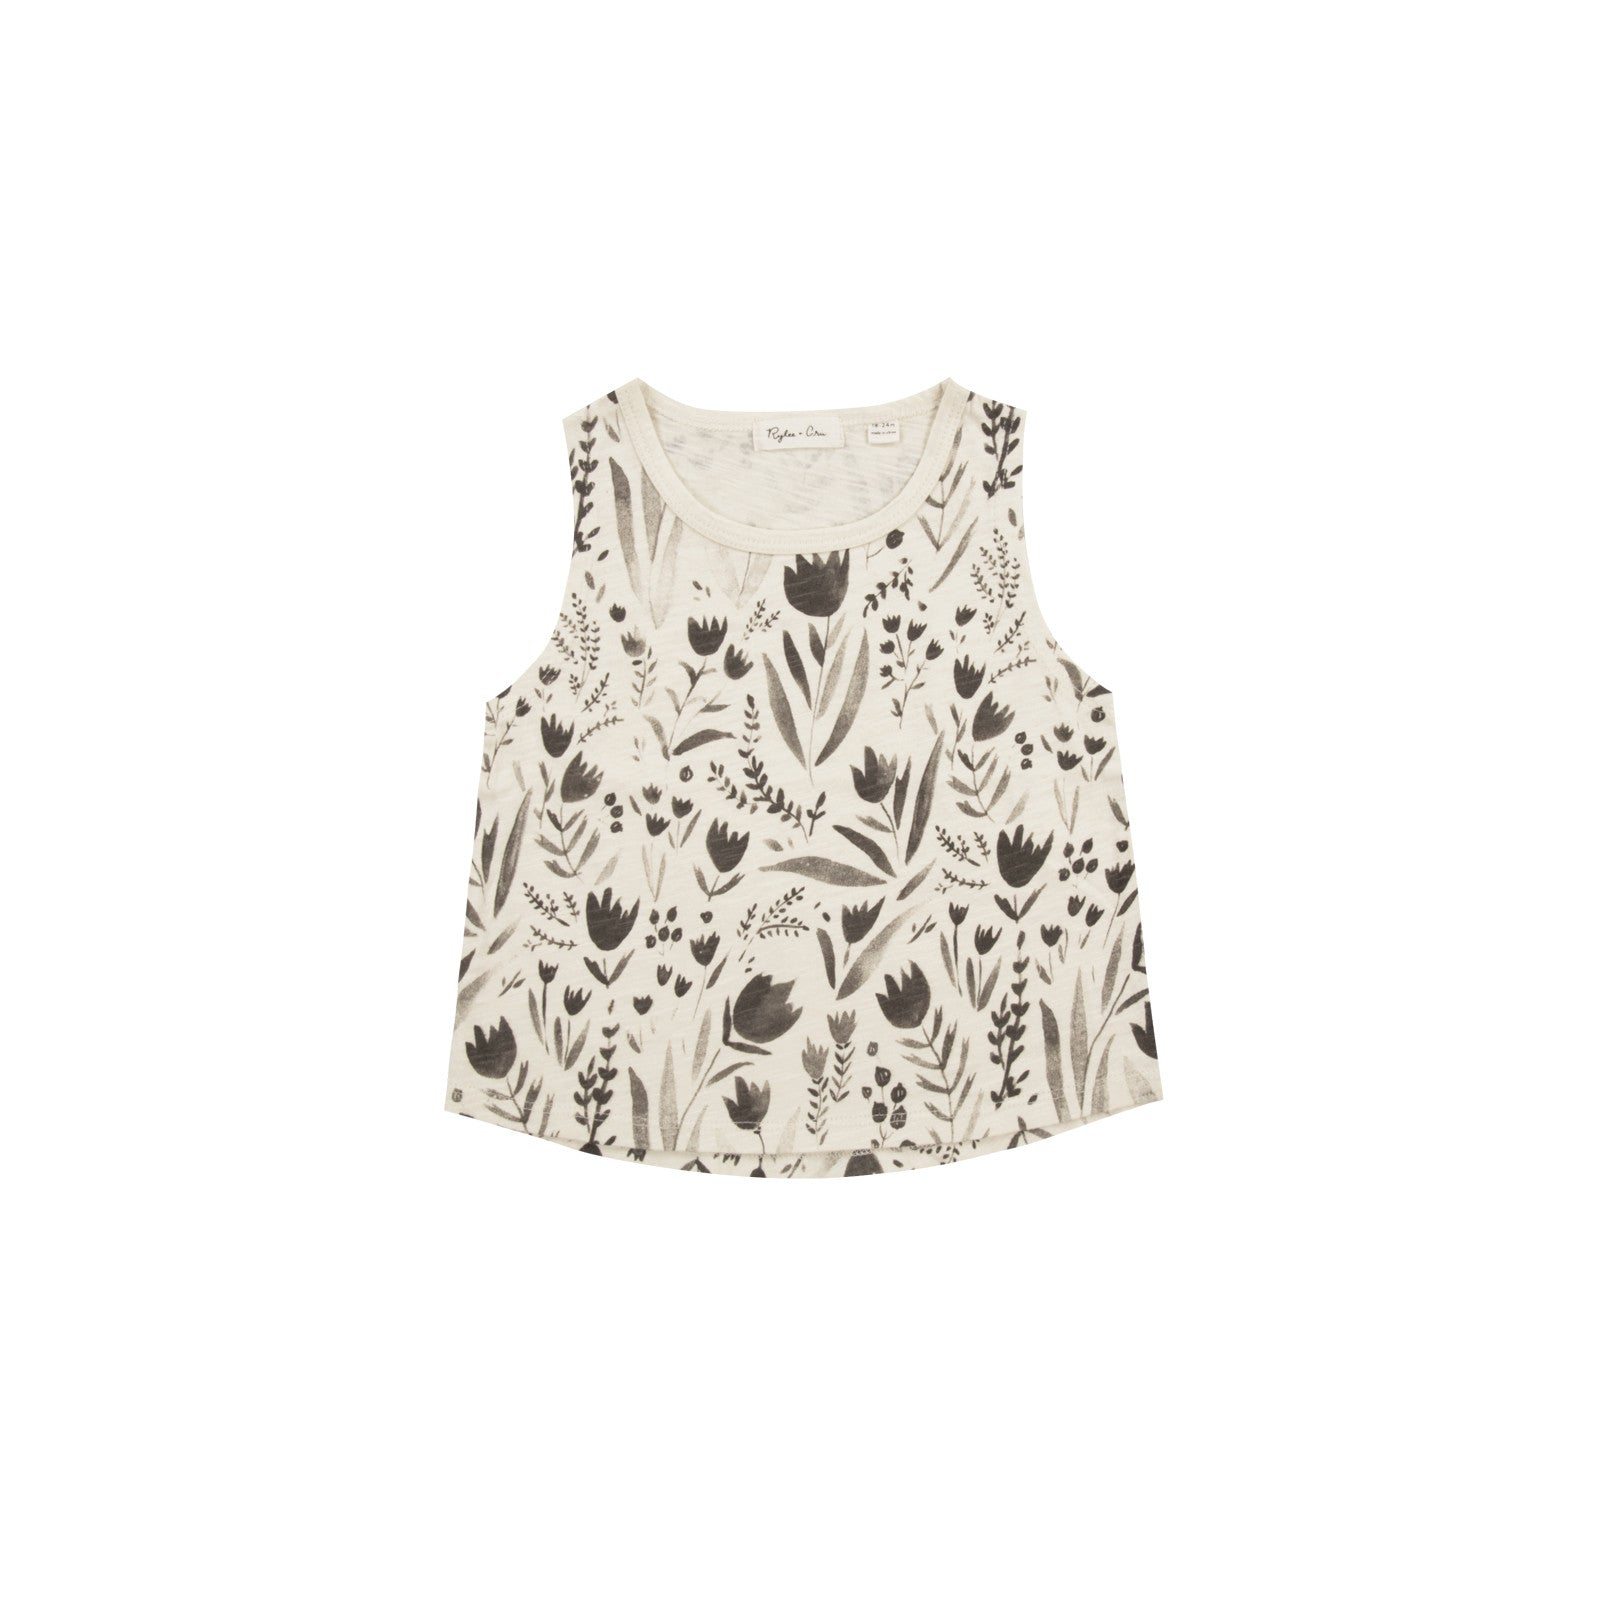 Baby Tank Top with Flora Print by Rylee and Cru